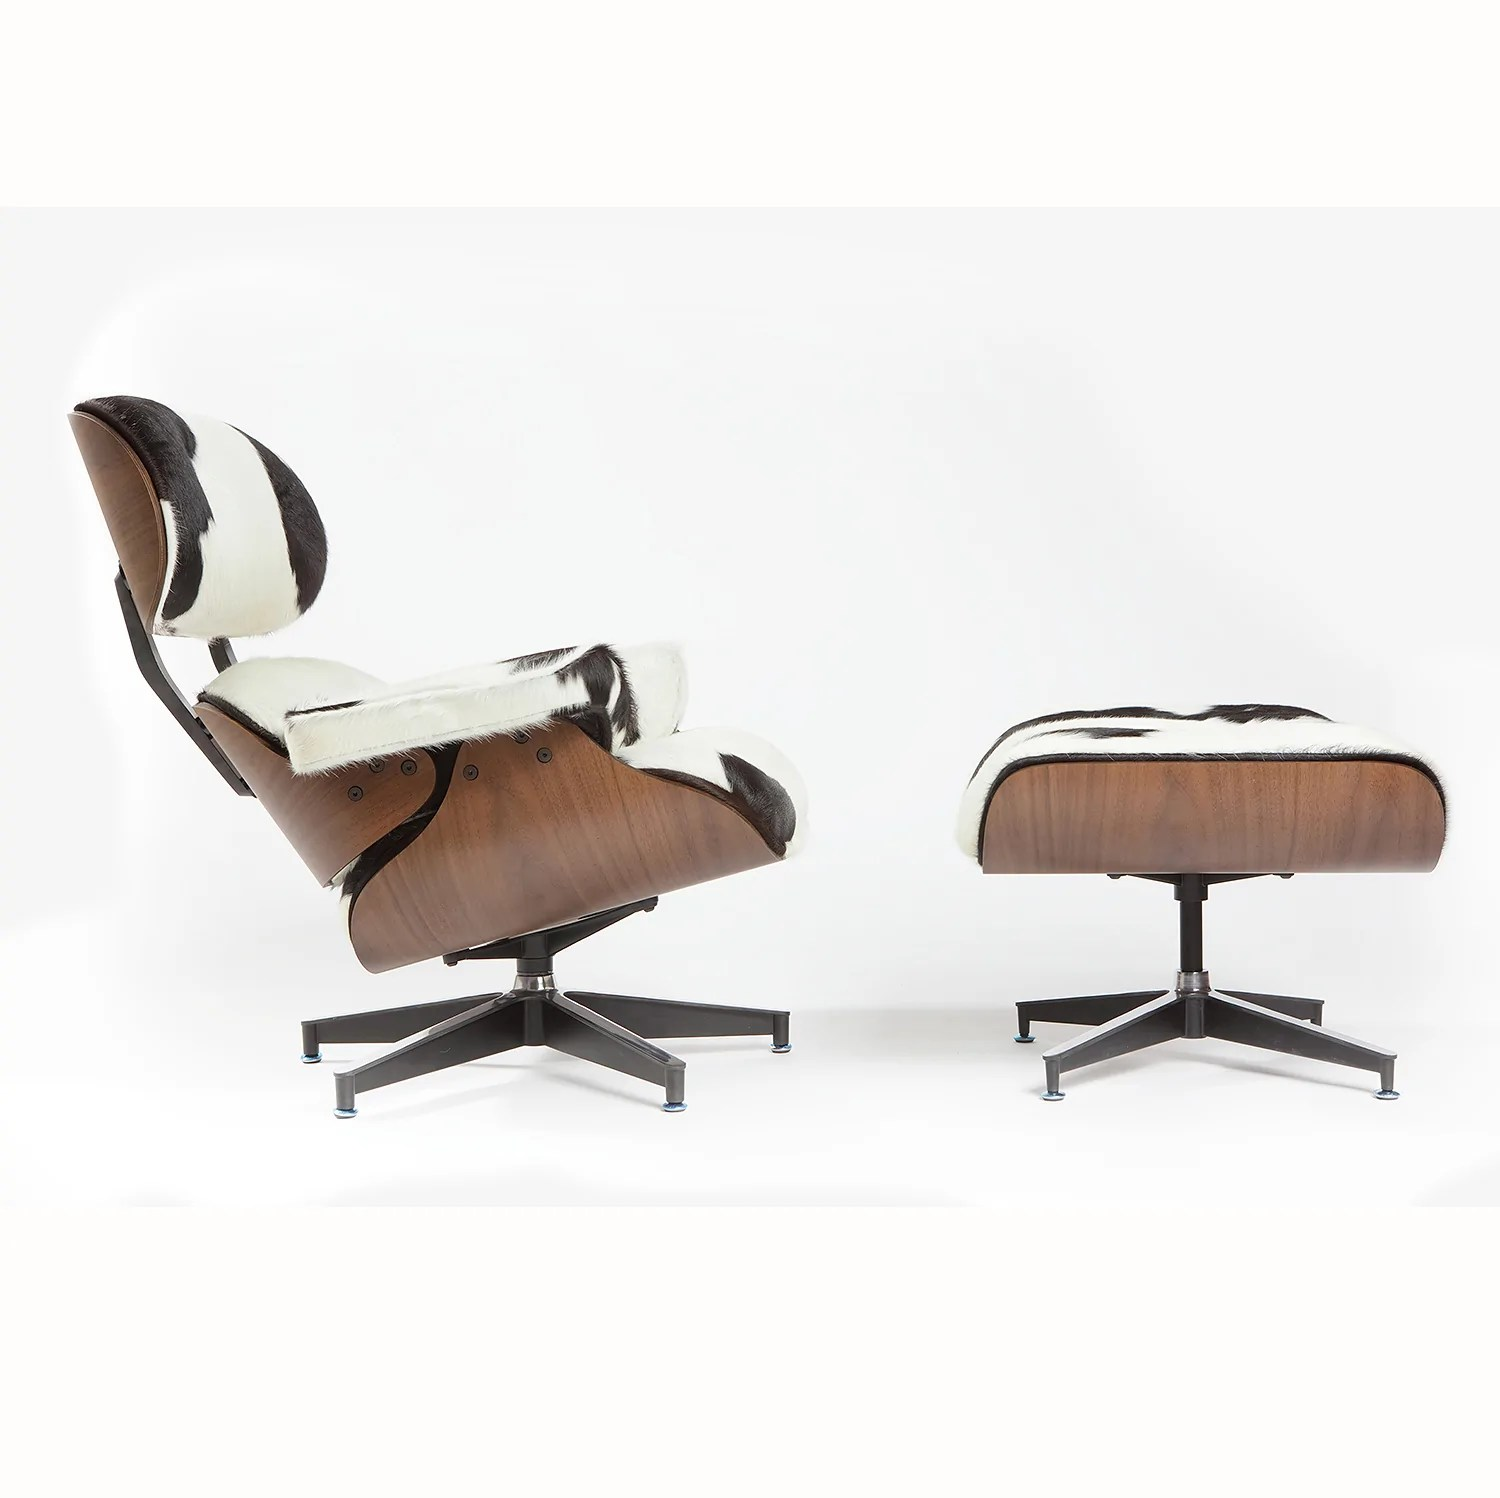 Charles Eames Lounge Chair Charles Eames Lounge Chair - Holstein Black & White - Homelosophy – Homelosophy